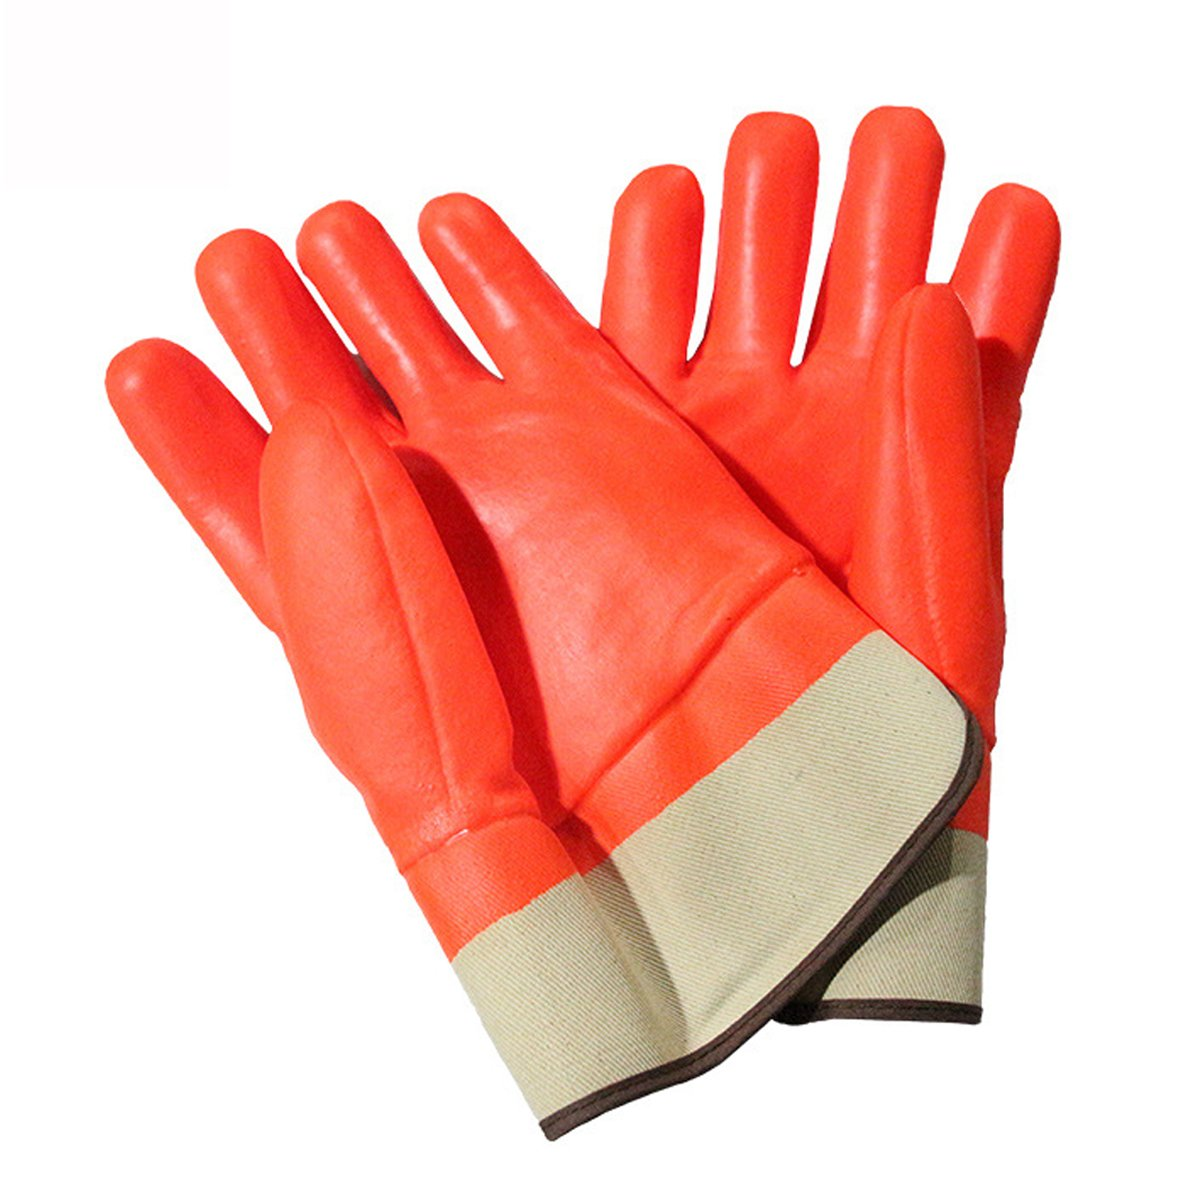 Chemical Water Resistance Gloves Used for Industries Oil, Acid, Alkali Resistance 11'